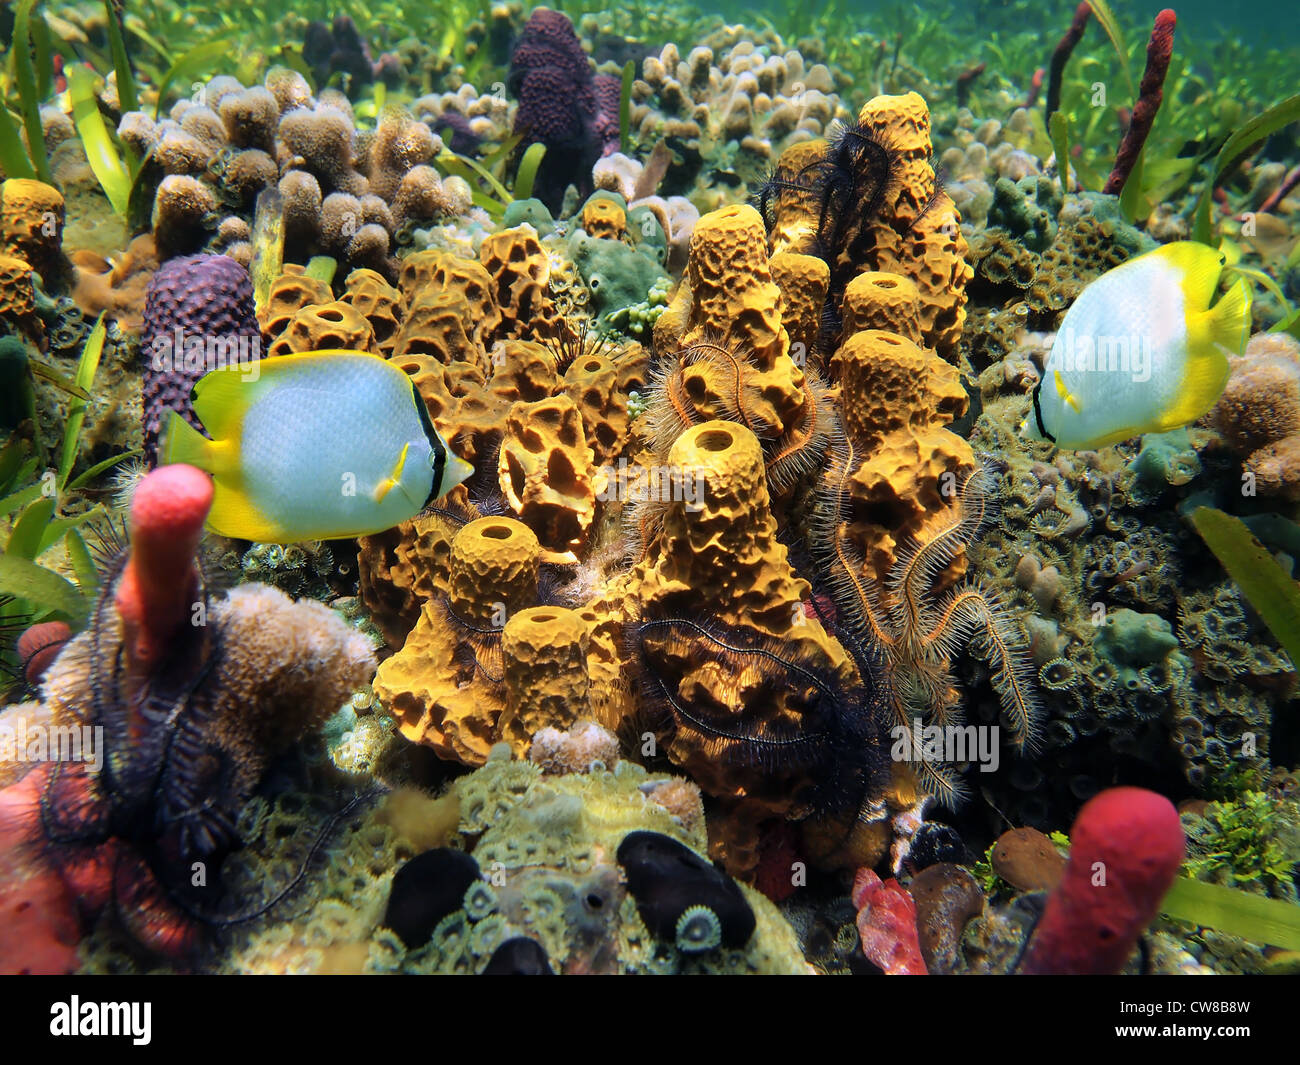 Underwater marine life, sponges, brittle stars and tropical fish in a coral reef, Caribbean sea - Stock Image